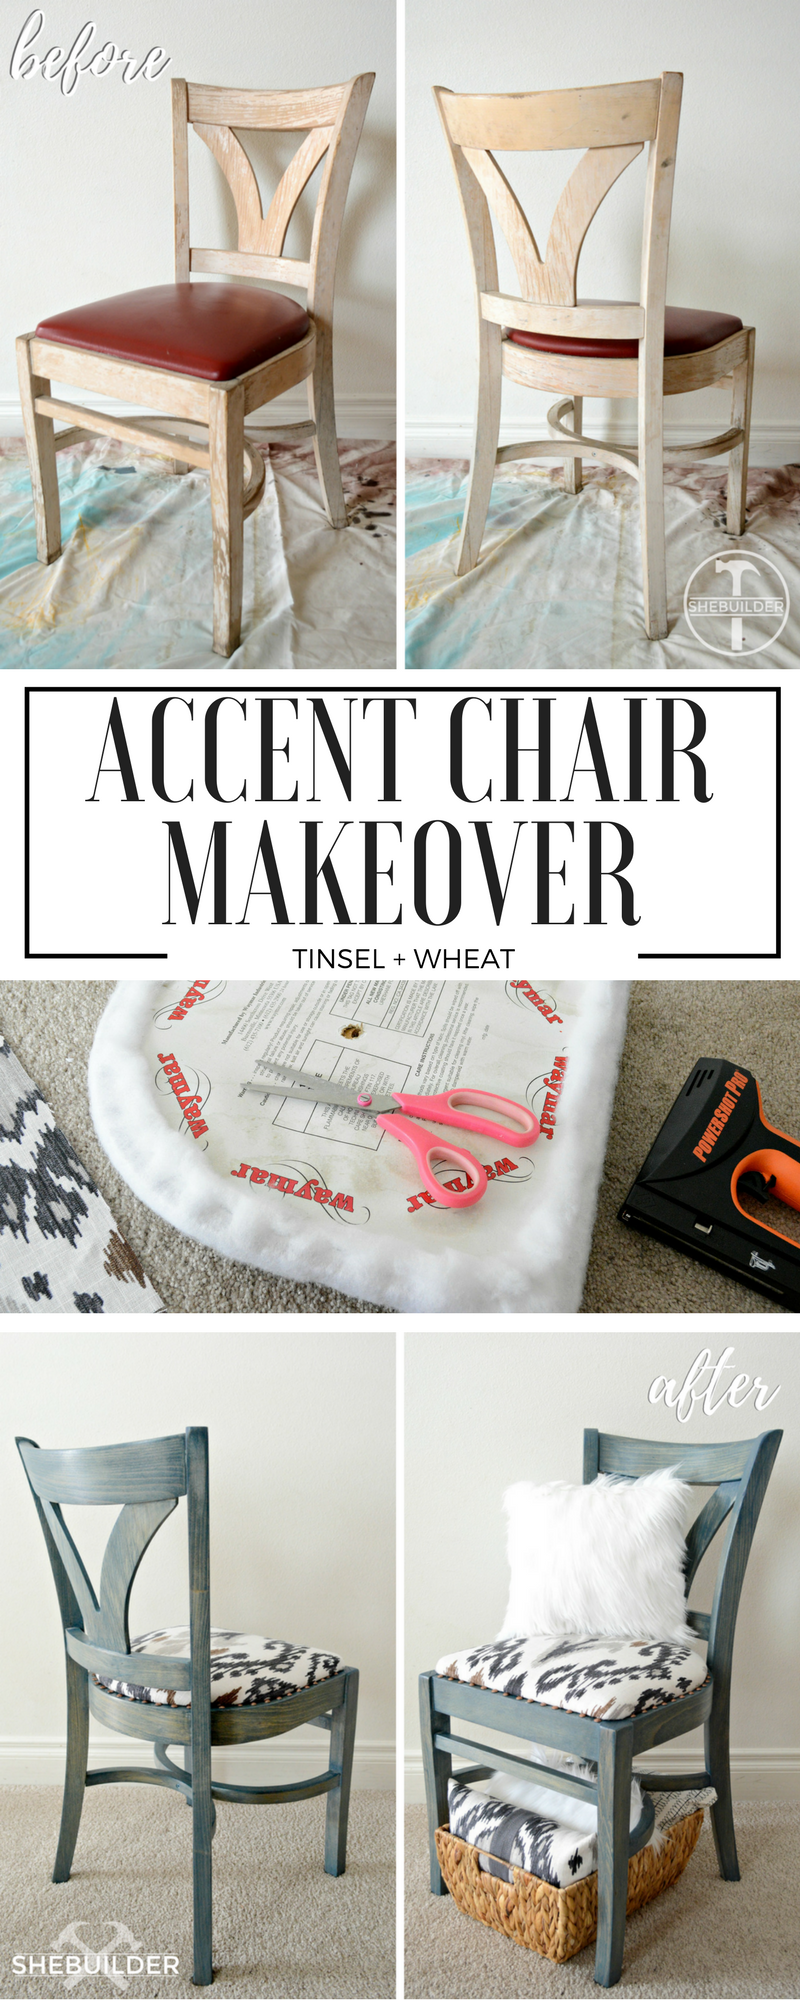 Accent Chair Makeover Upcycled Reupholstered Refinished Chair Love This Fabric By Vern Yip Desig Wood Chair Makeover Dining Chair Makeover Chair Makeover